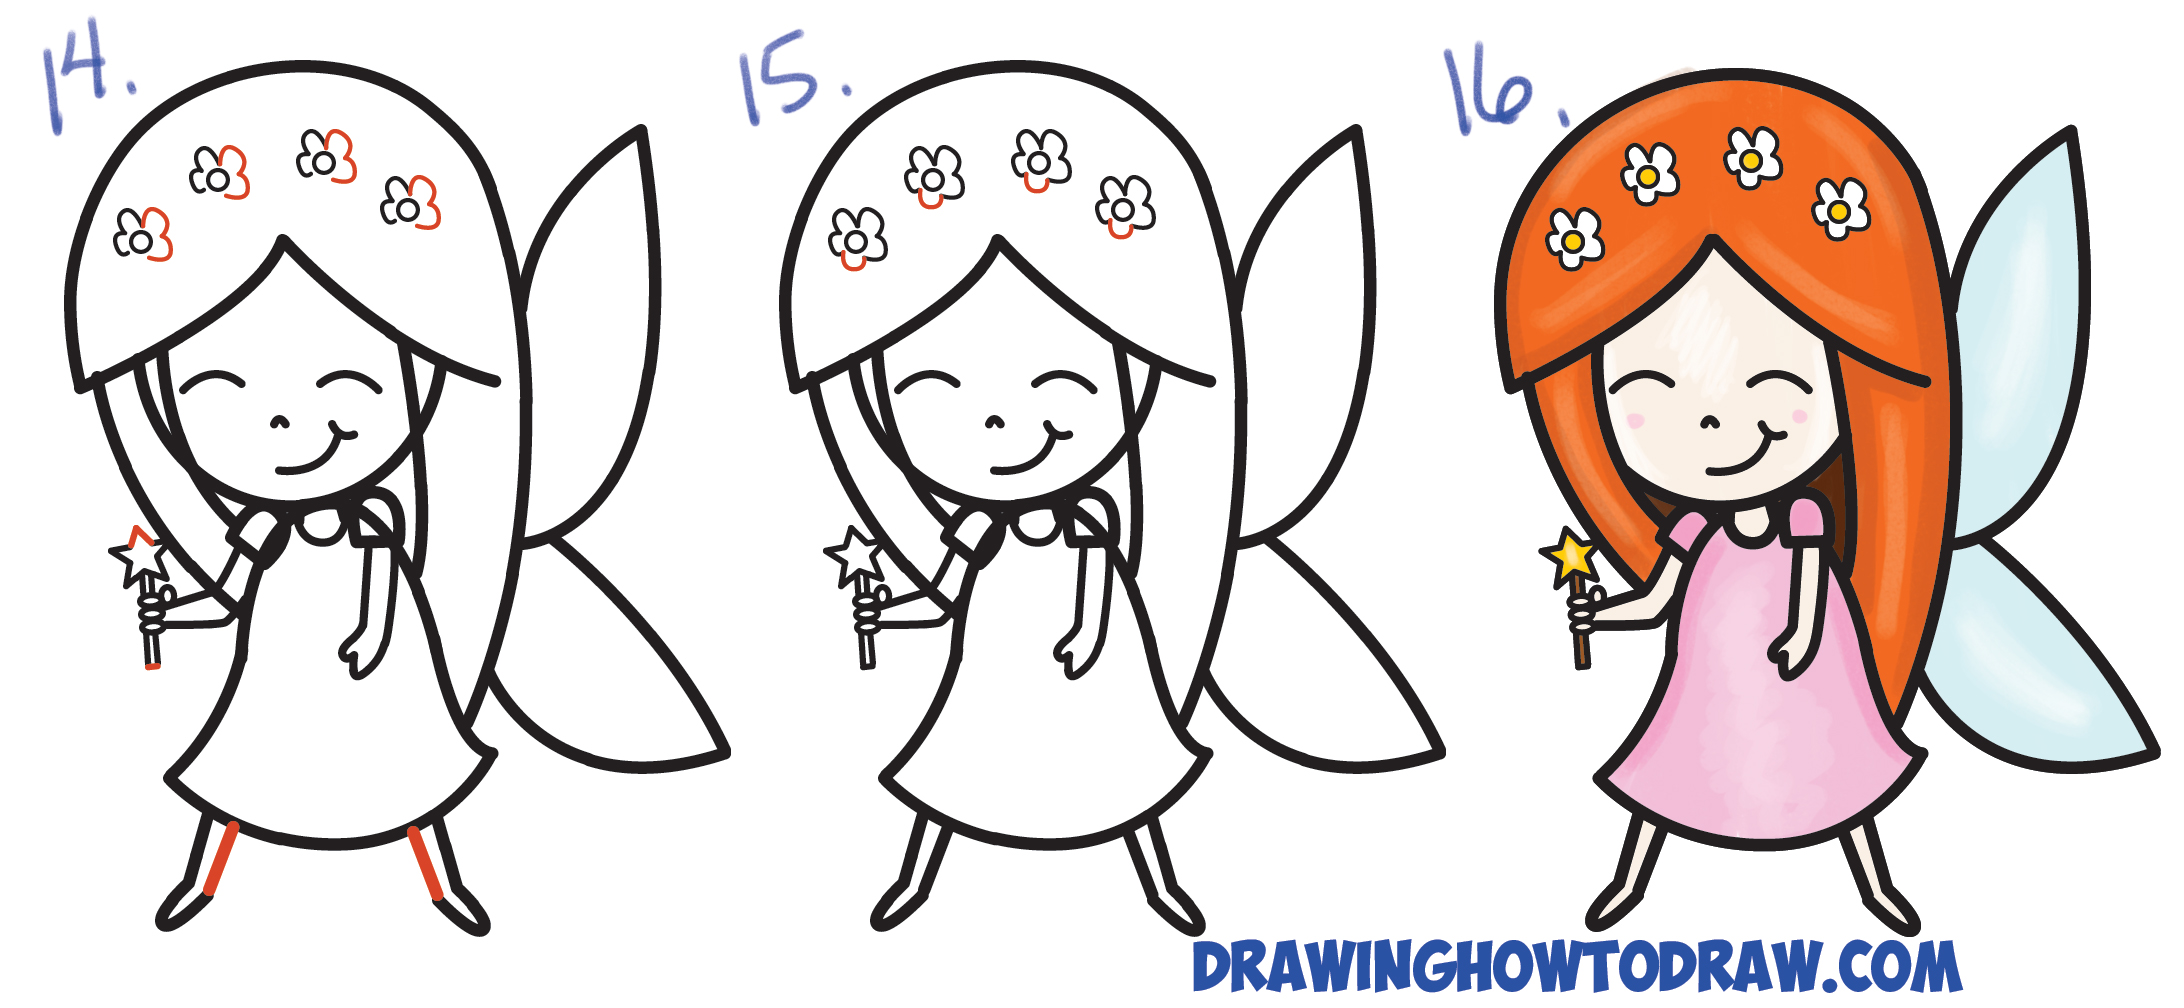 Learn How To Draw A Cute Cartoon Fairy Kawaii Chibi From Letter K Step By  Step